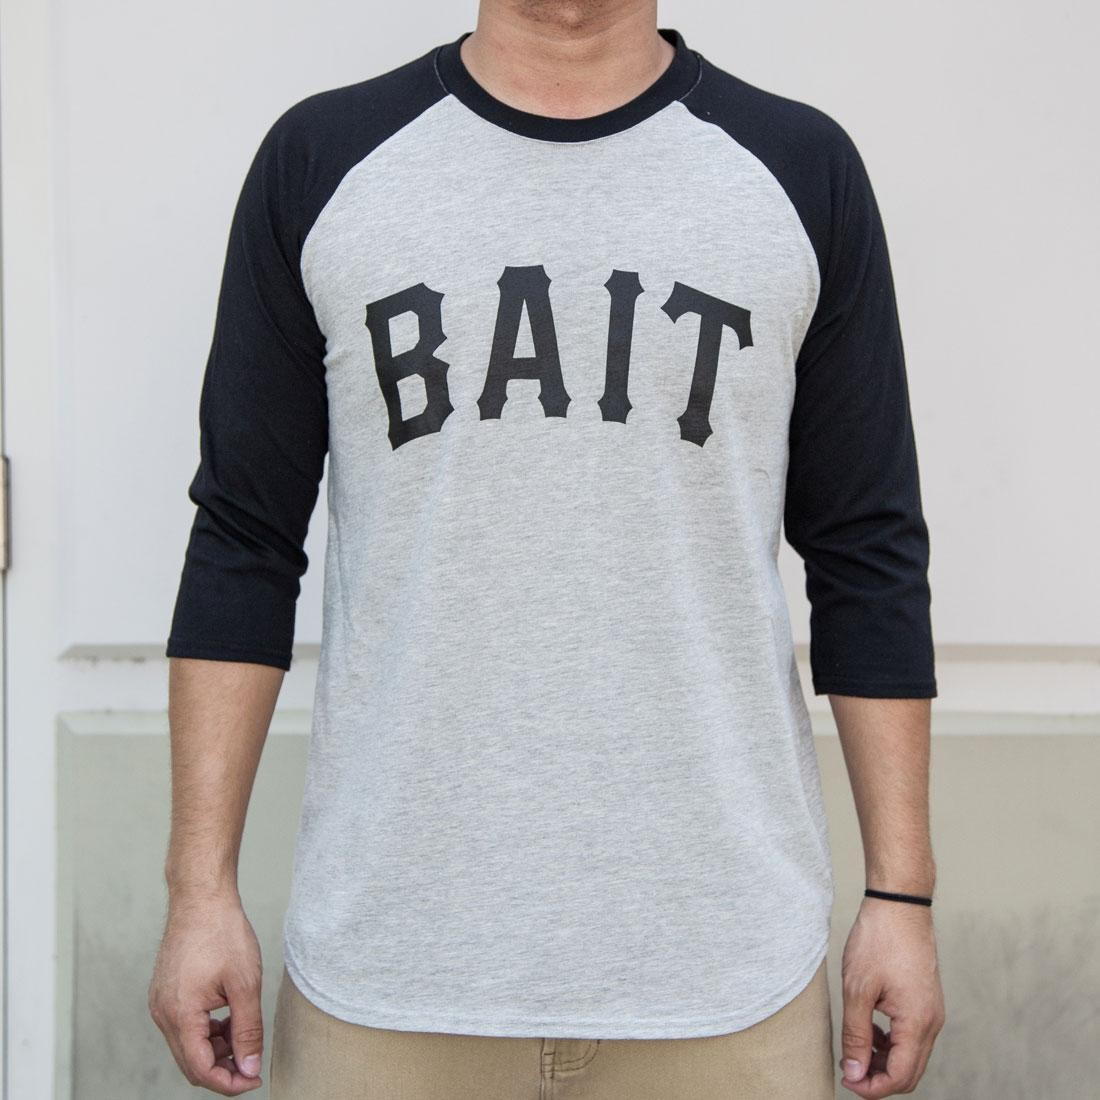 BAIT Men Core Raglan Tee (gray / black)